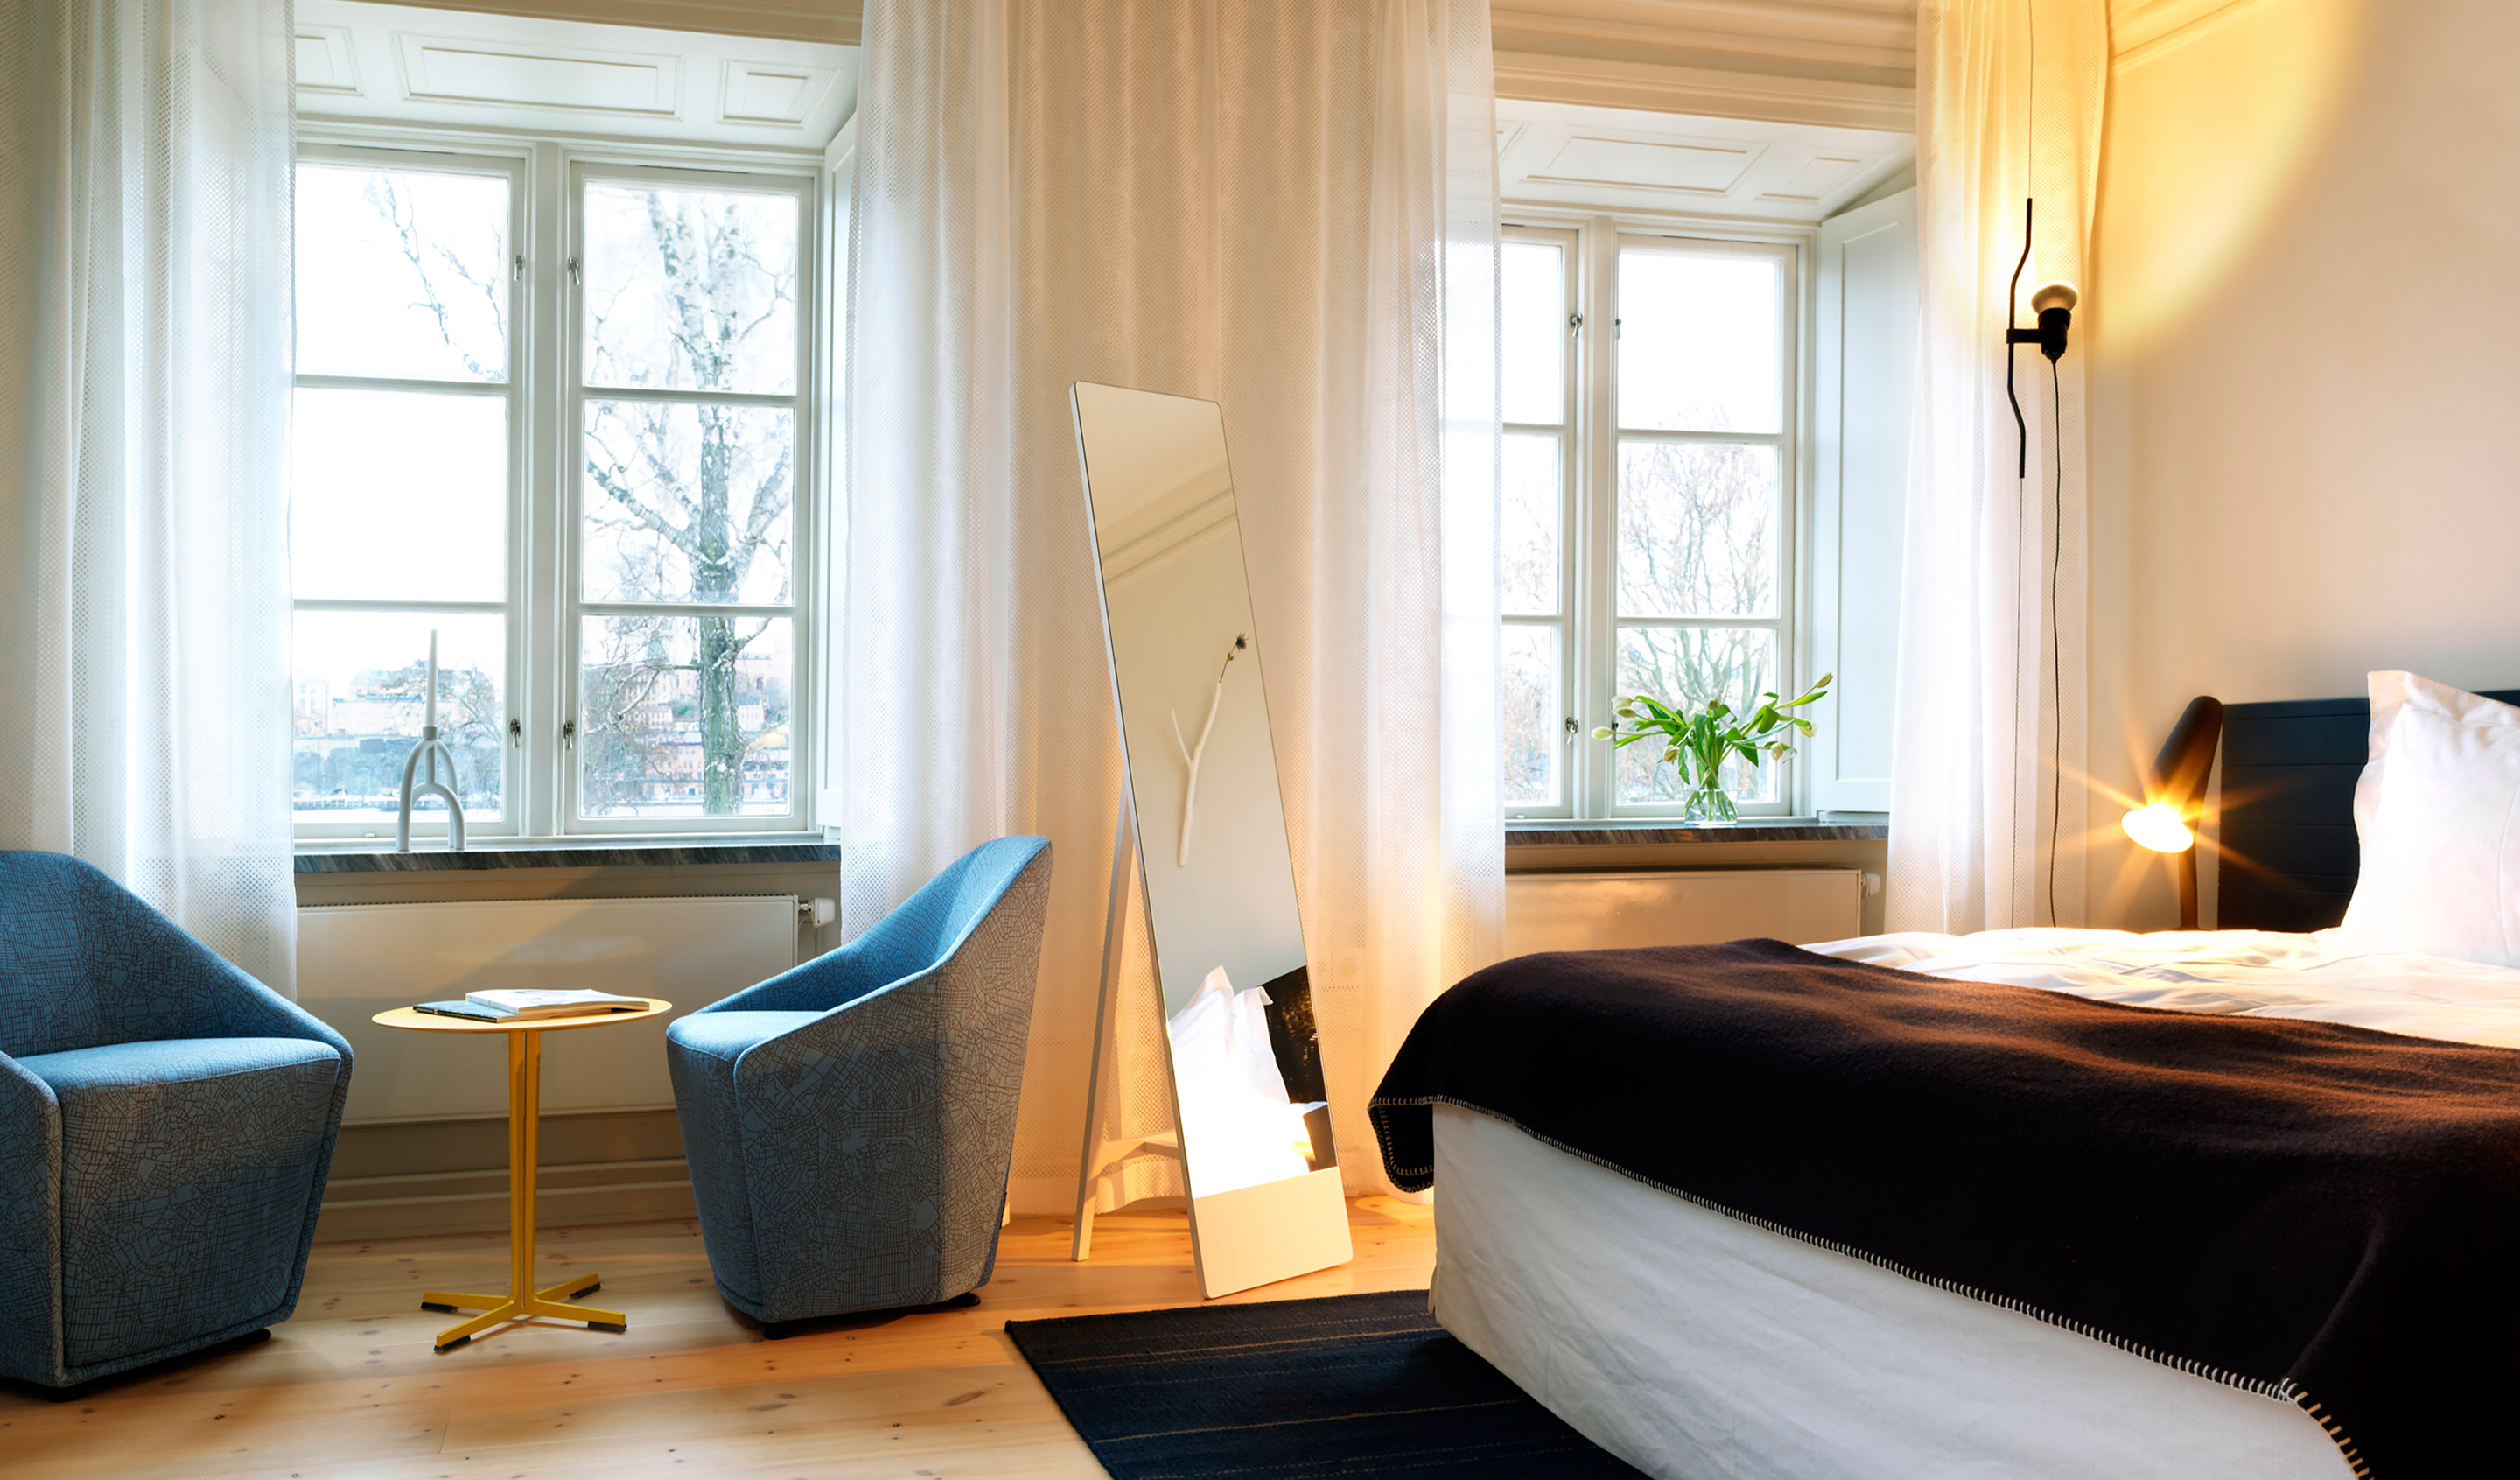 Hotel skeppsholmen stockholm sweden design hotels for Designhotel q